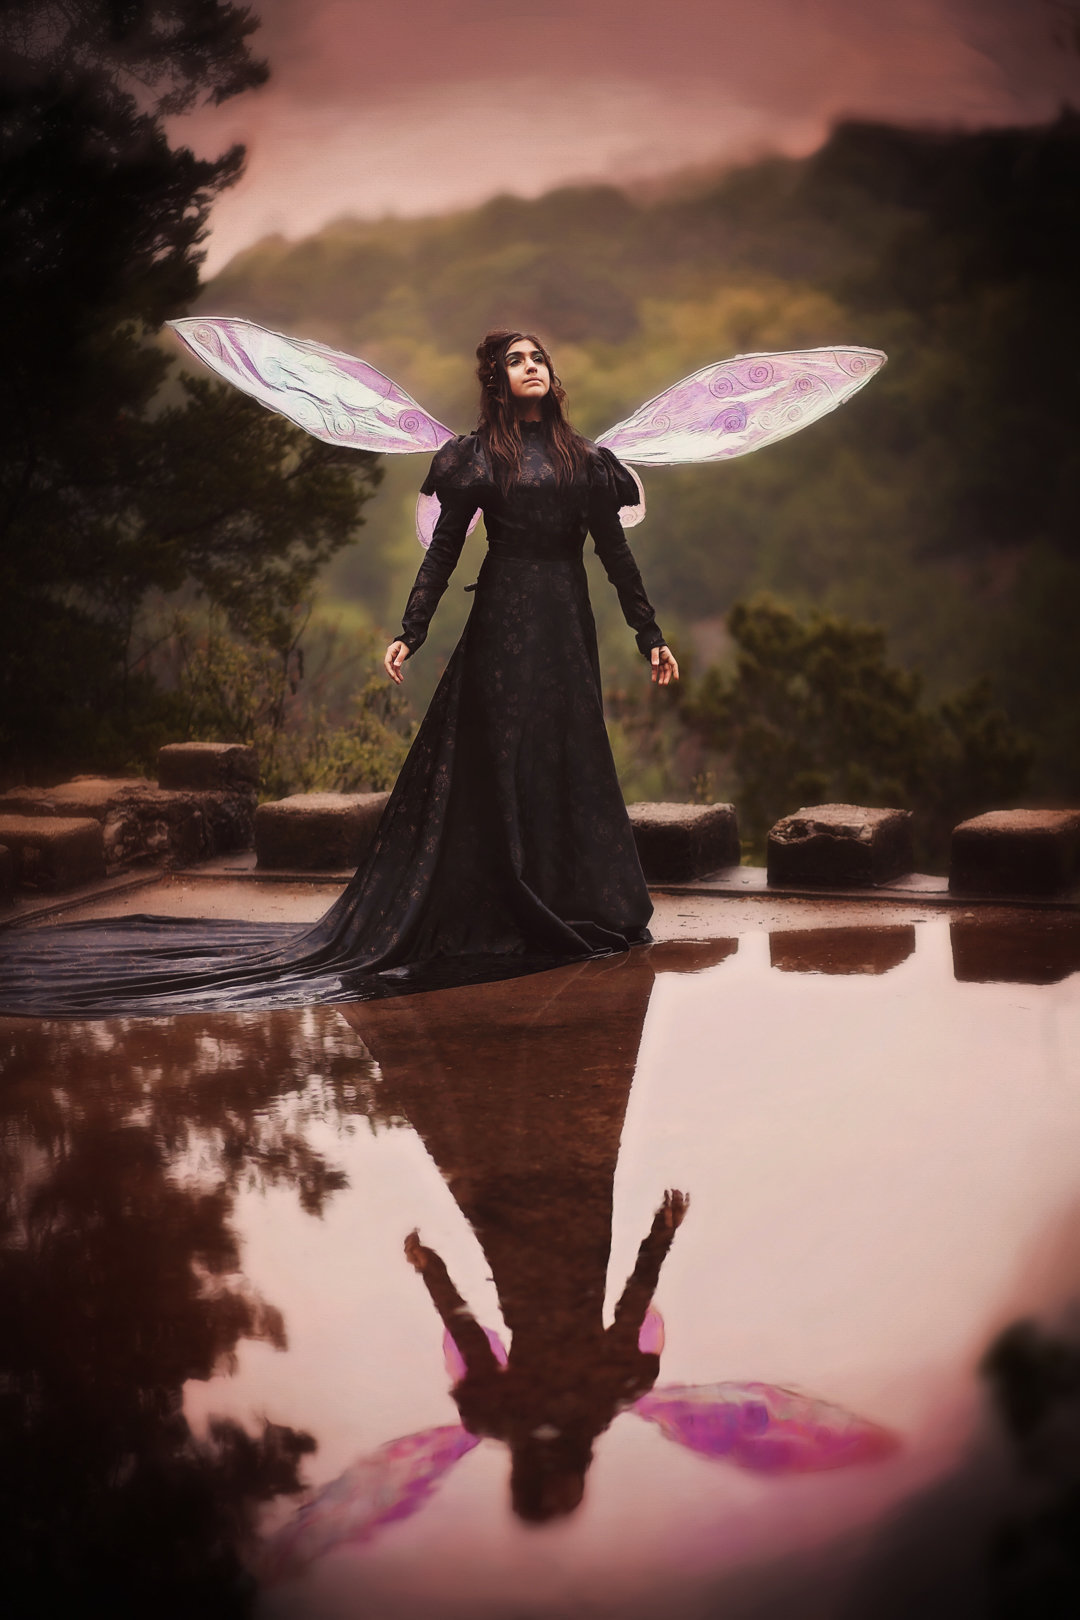 Fairytale-Child-Fairy-Reflection-Dallas-TX.jpg